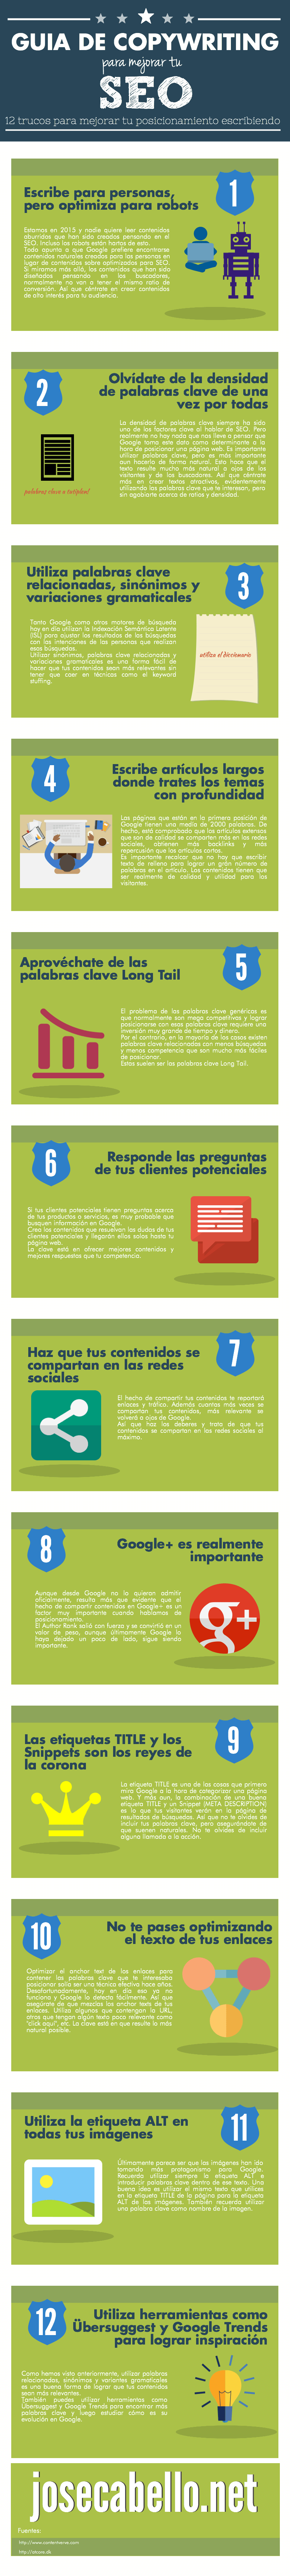 guia-de-copywriting-seo